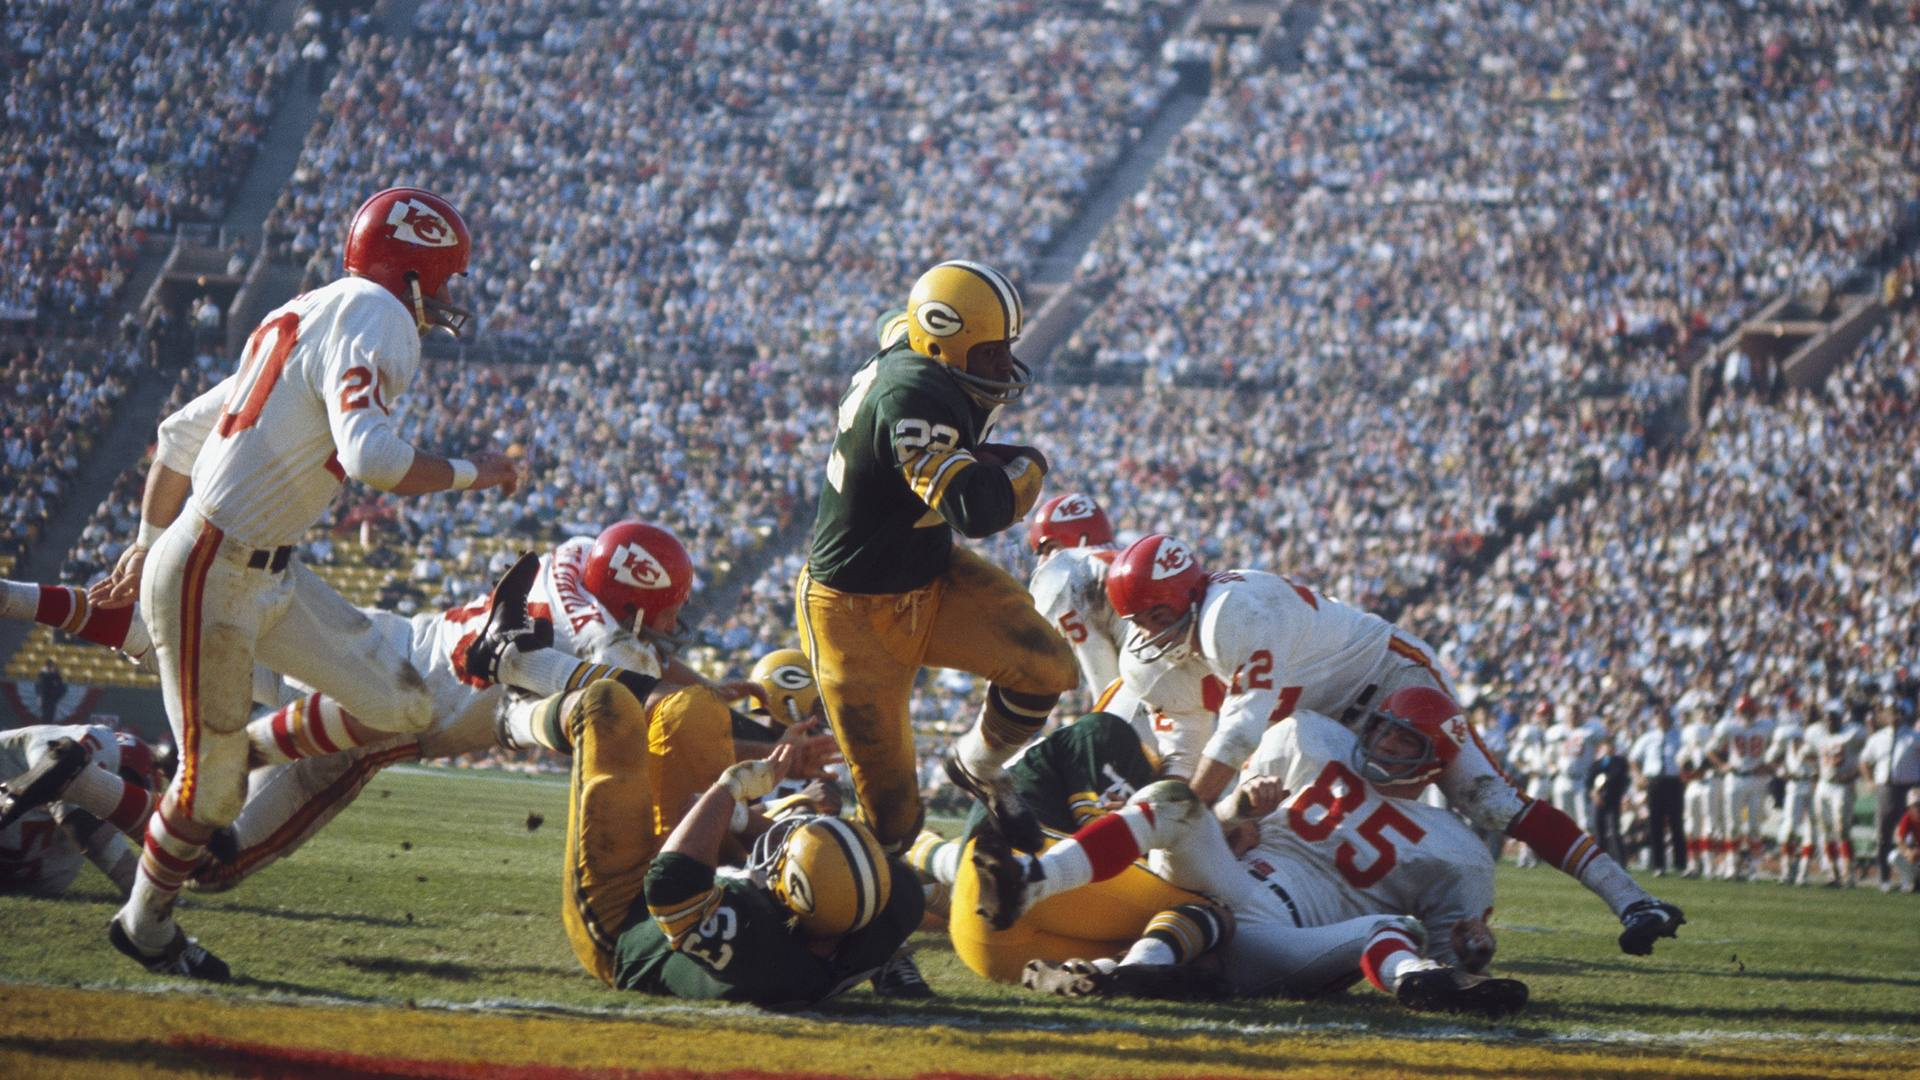 The first Super Bowl at the LA Coliseum on Jan. 15, 1967